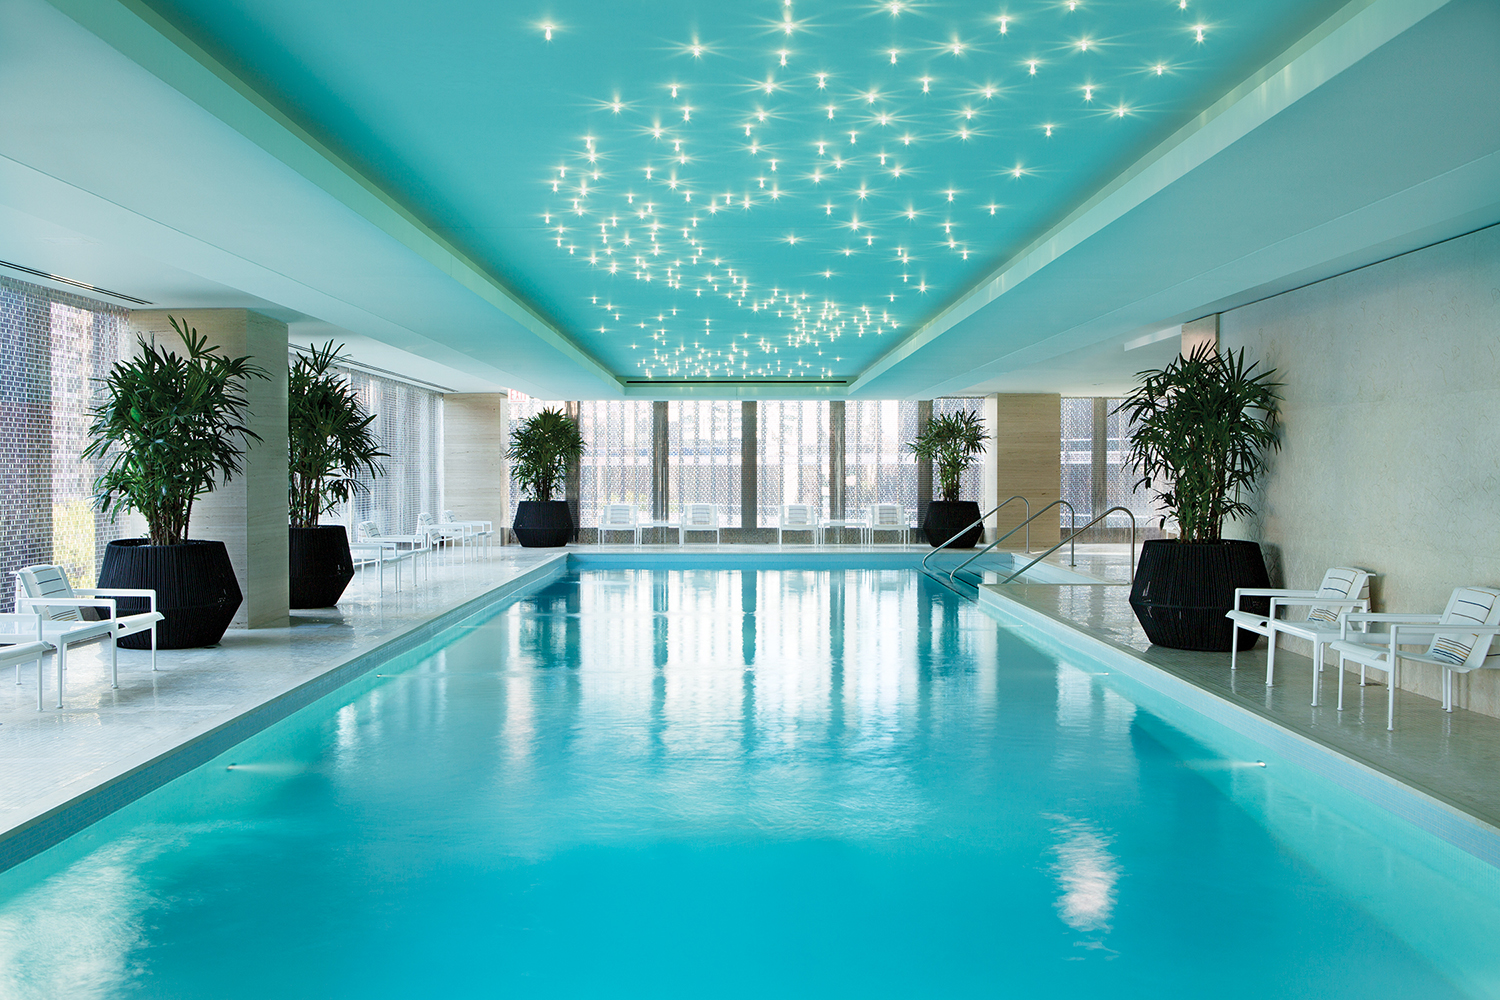 The swimming pool at Langham Chicago.